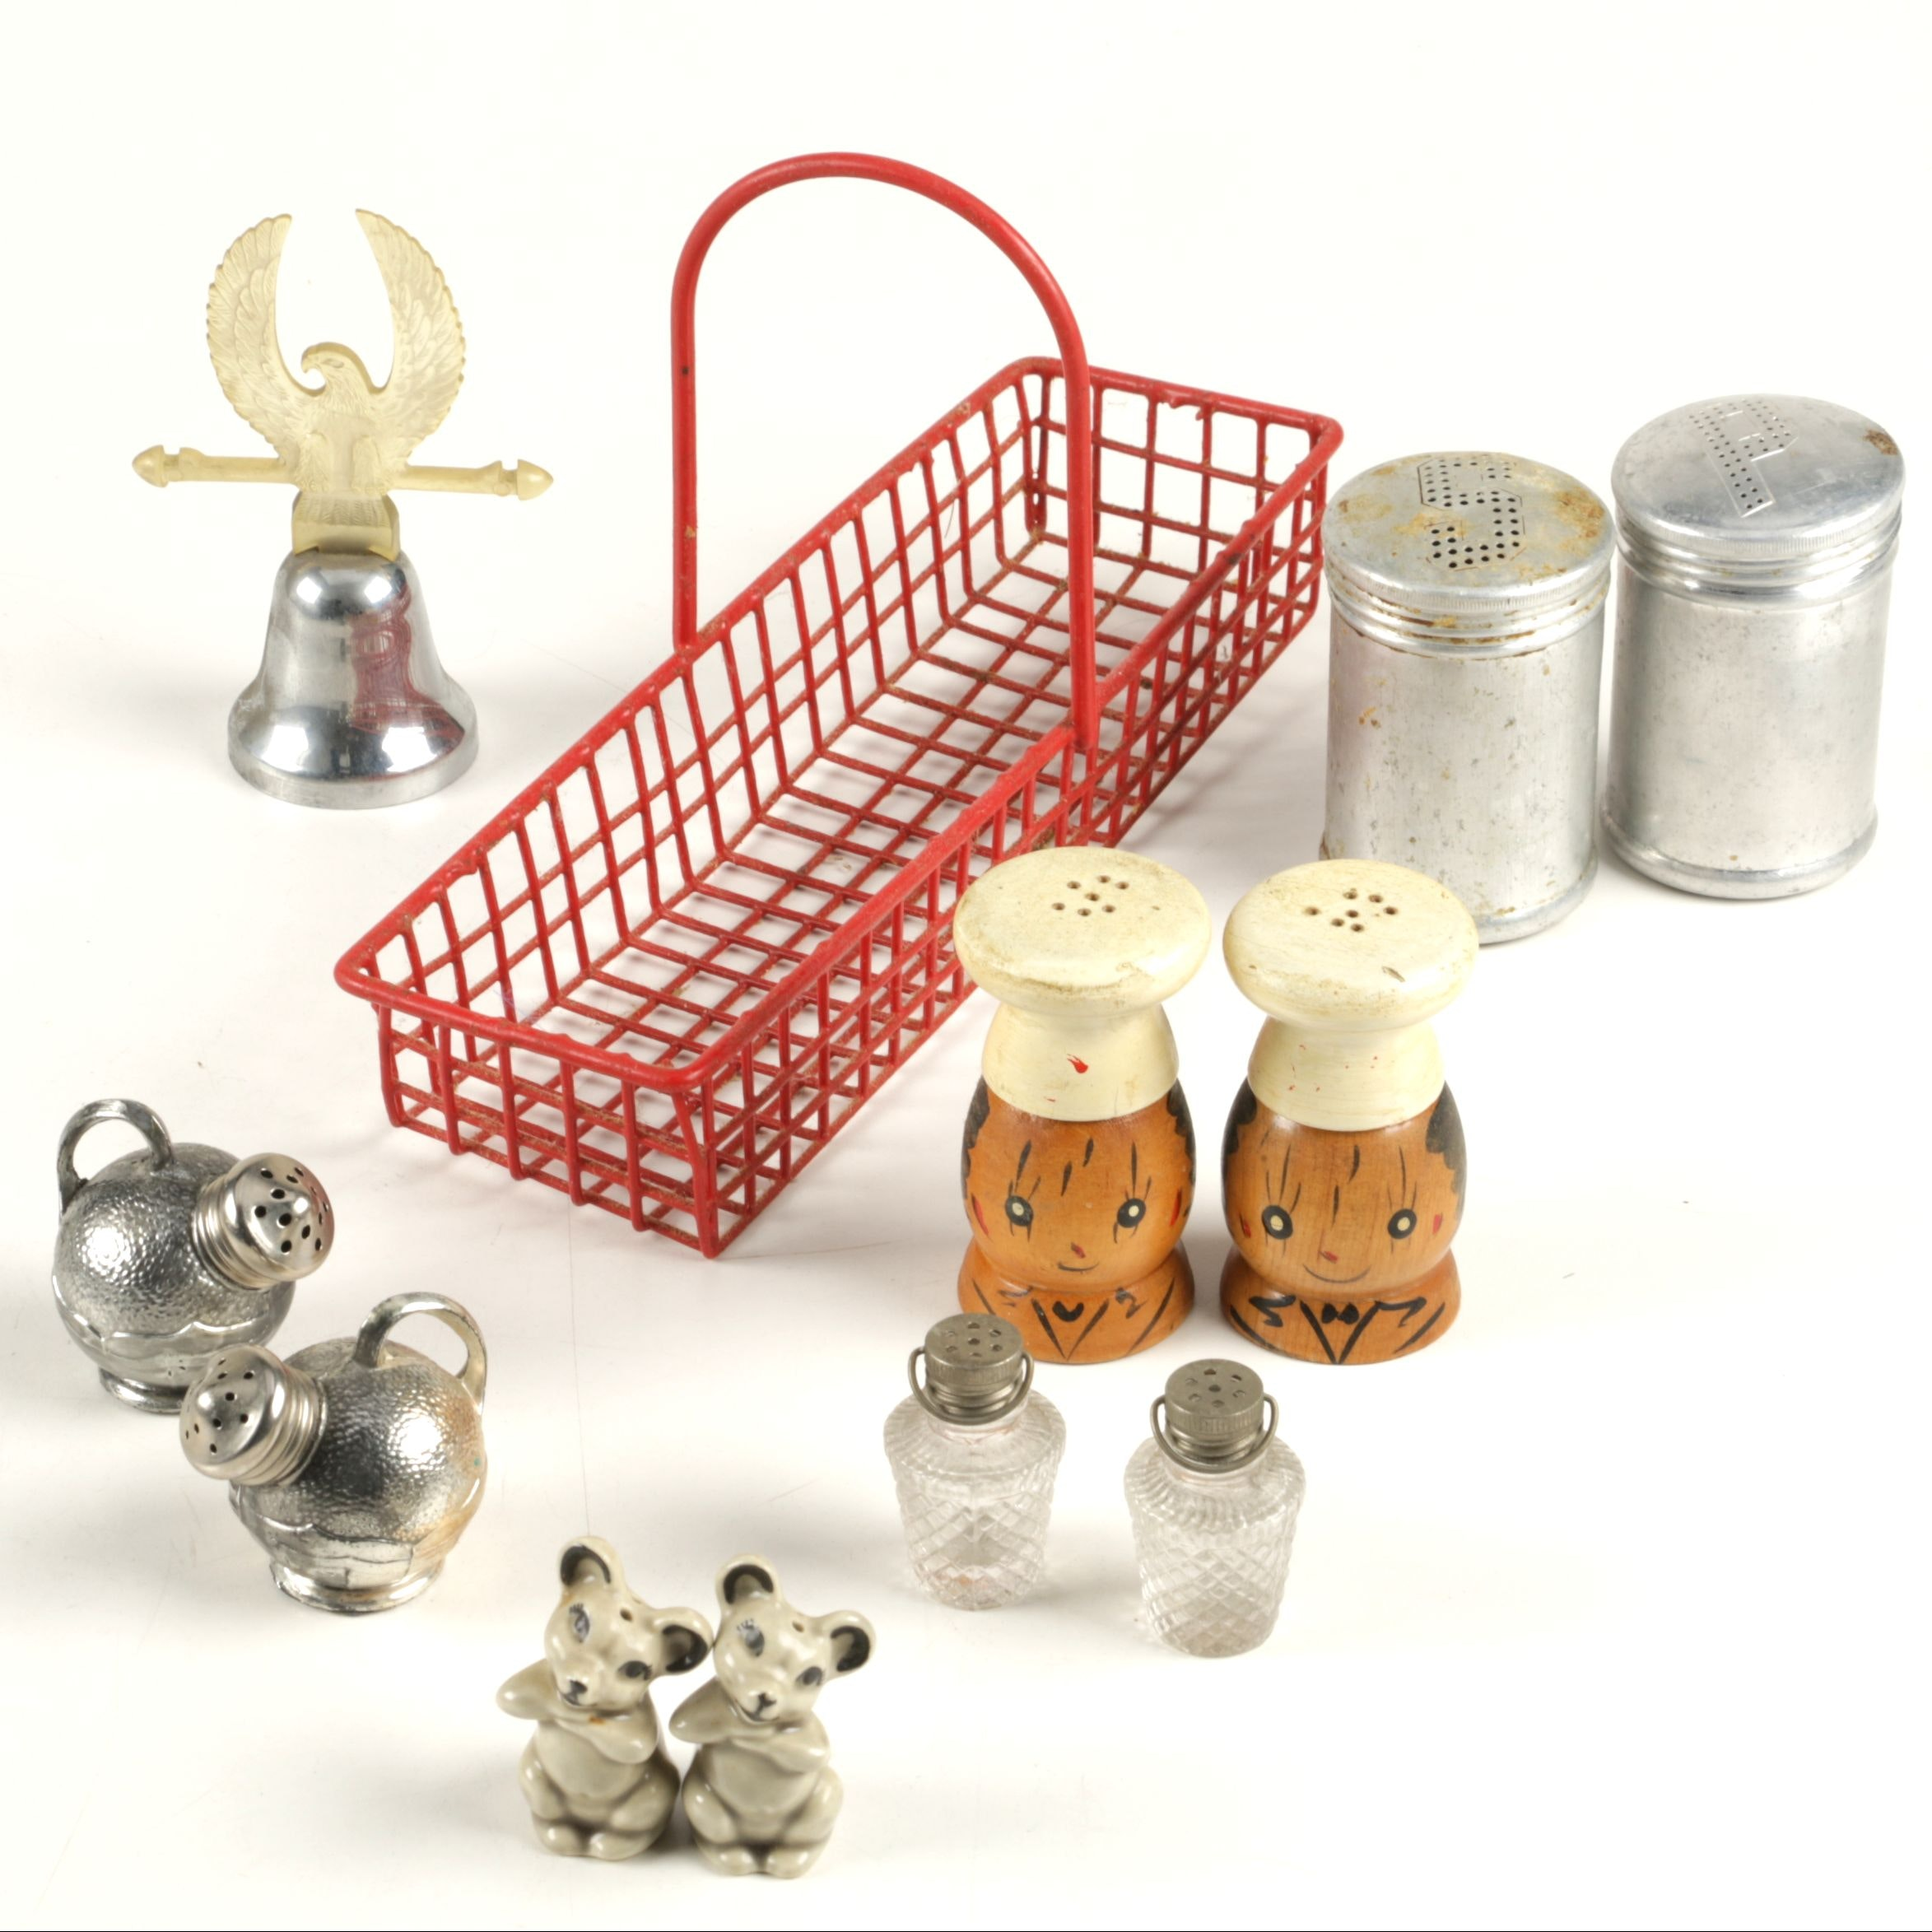 Vintage Salt and Pepper Shakers Including Silver Plate